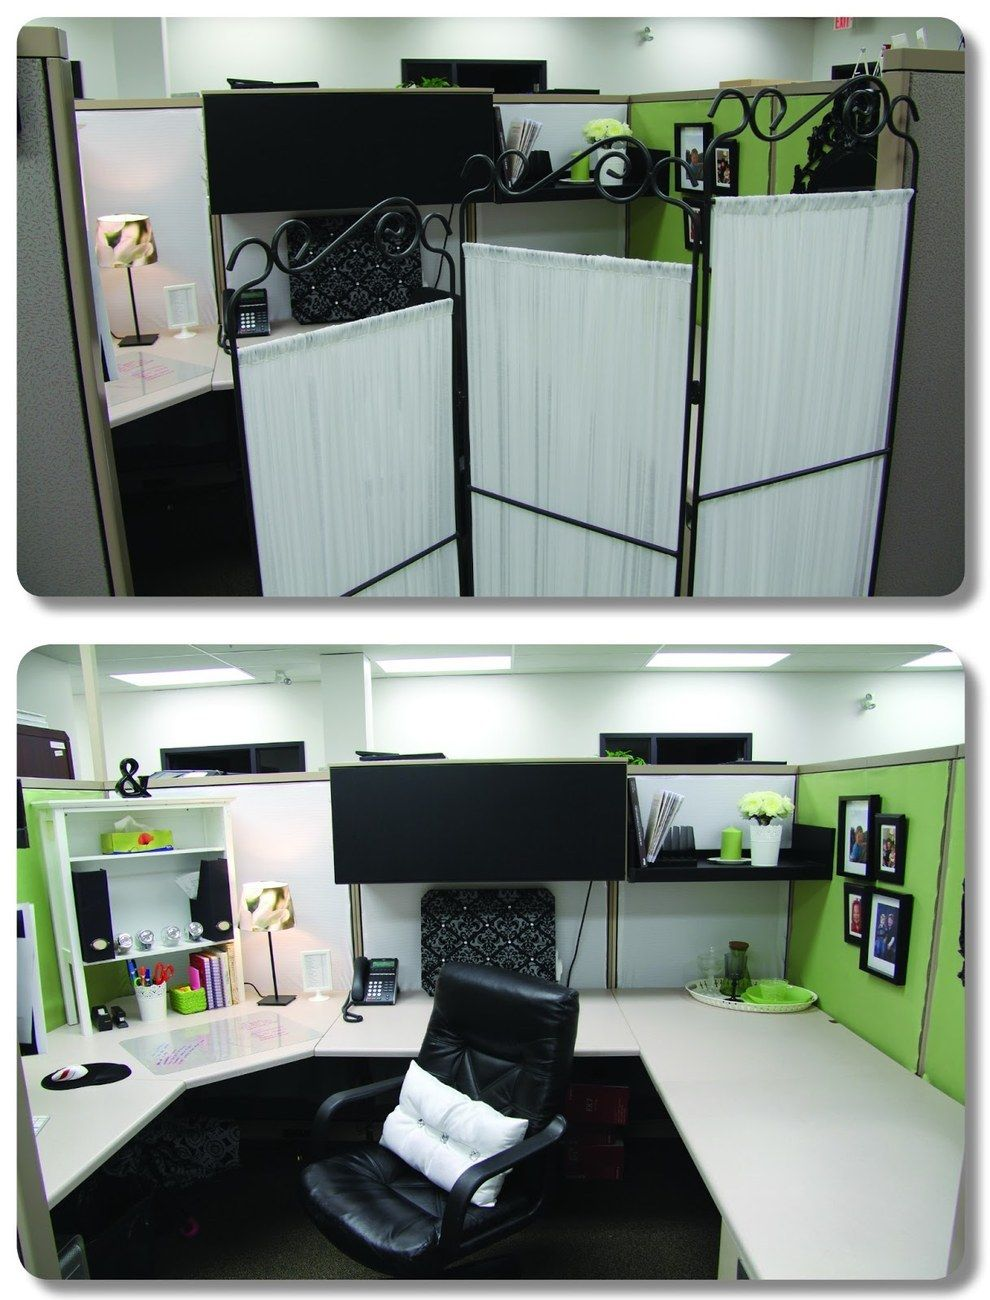 Cubicle Décor Ideas To Make Your Home Office Pop: Use A Room Divider To Create Some Semblance Of Privacy